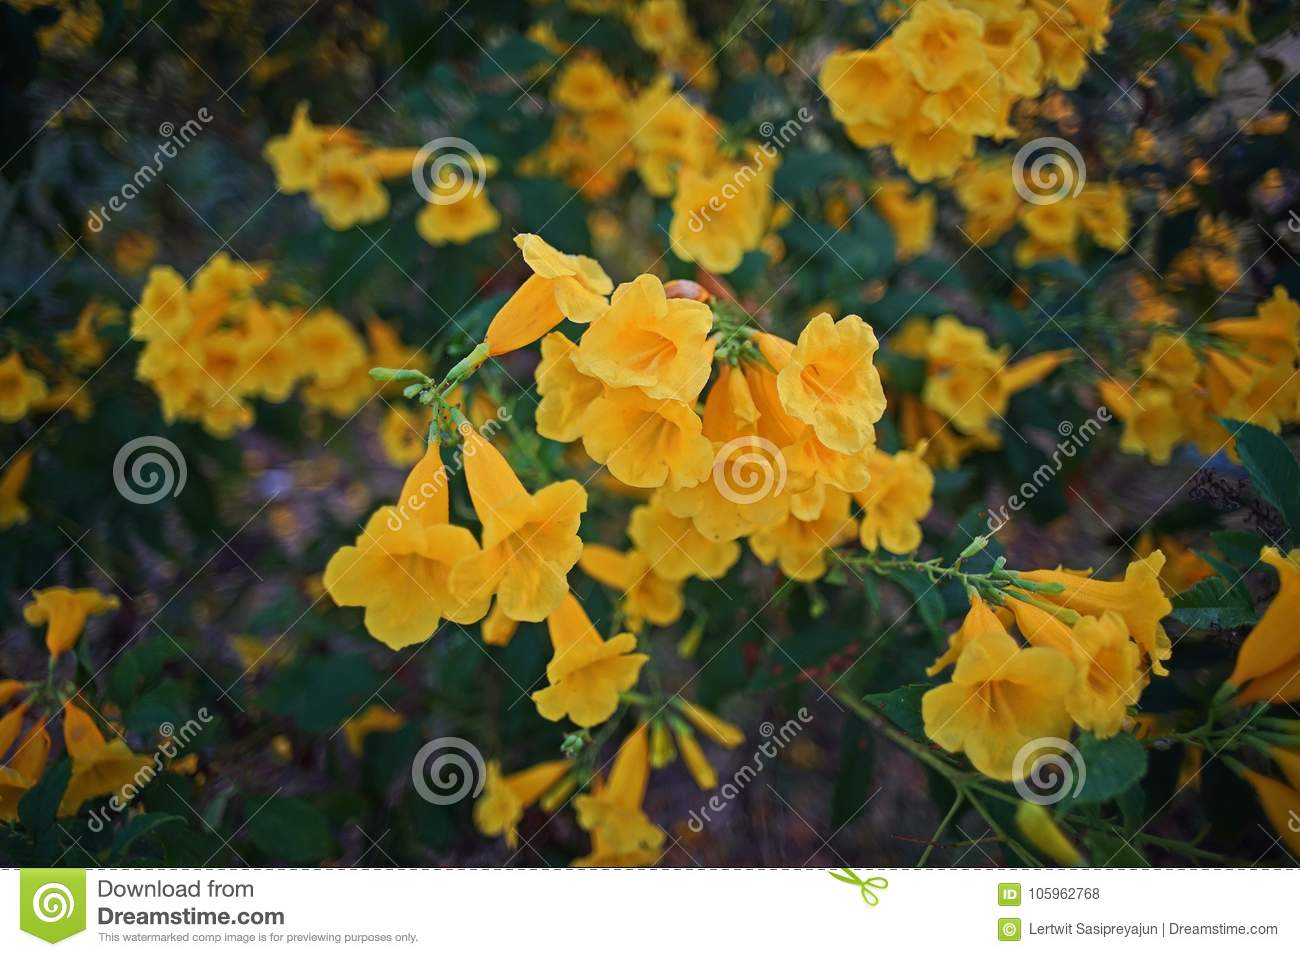 Tecoma stans a species of flowering shrub in the trumpet vine tecoma stans a species of flowering shrub in the trumpet vine family bignoniaceae common names are yellow trumpet bush yellow bells yellow elder mightylinksfo